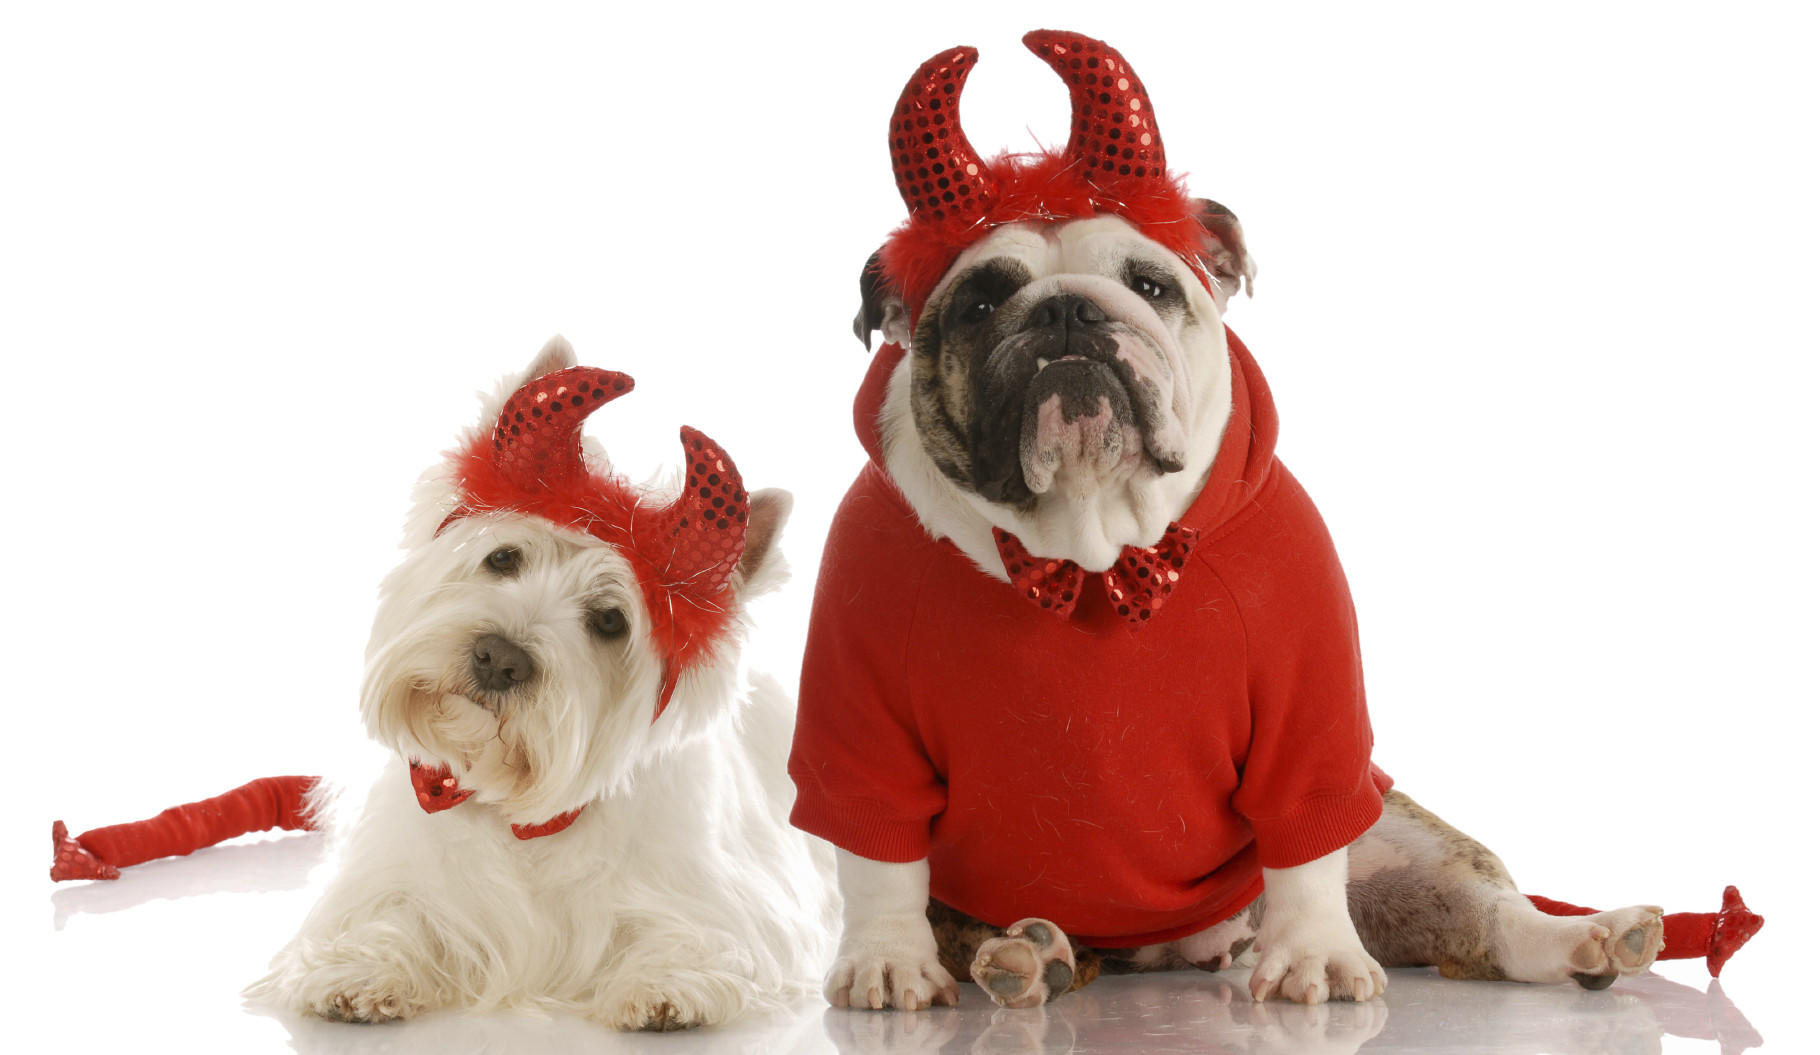 Pet costumes can be fun for humans, but animals don't always feel the same way. Make sure pet costumes don't impede breathing, movement, vision or hearing.